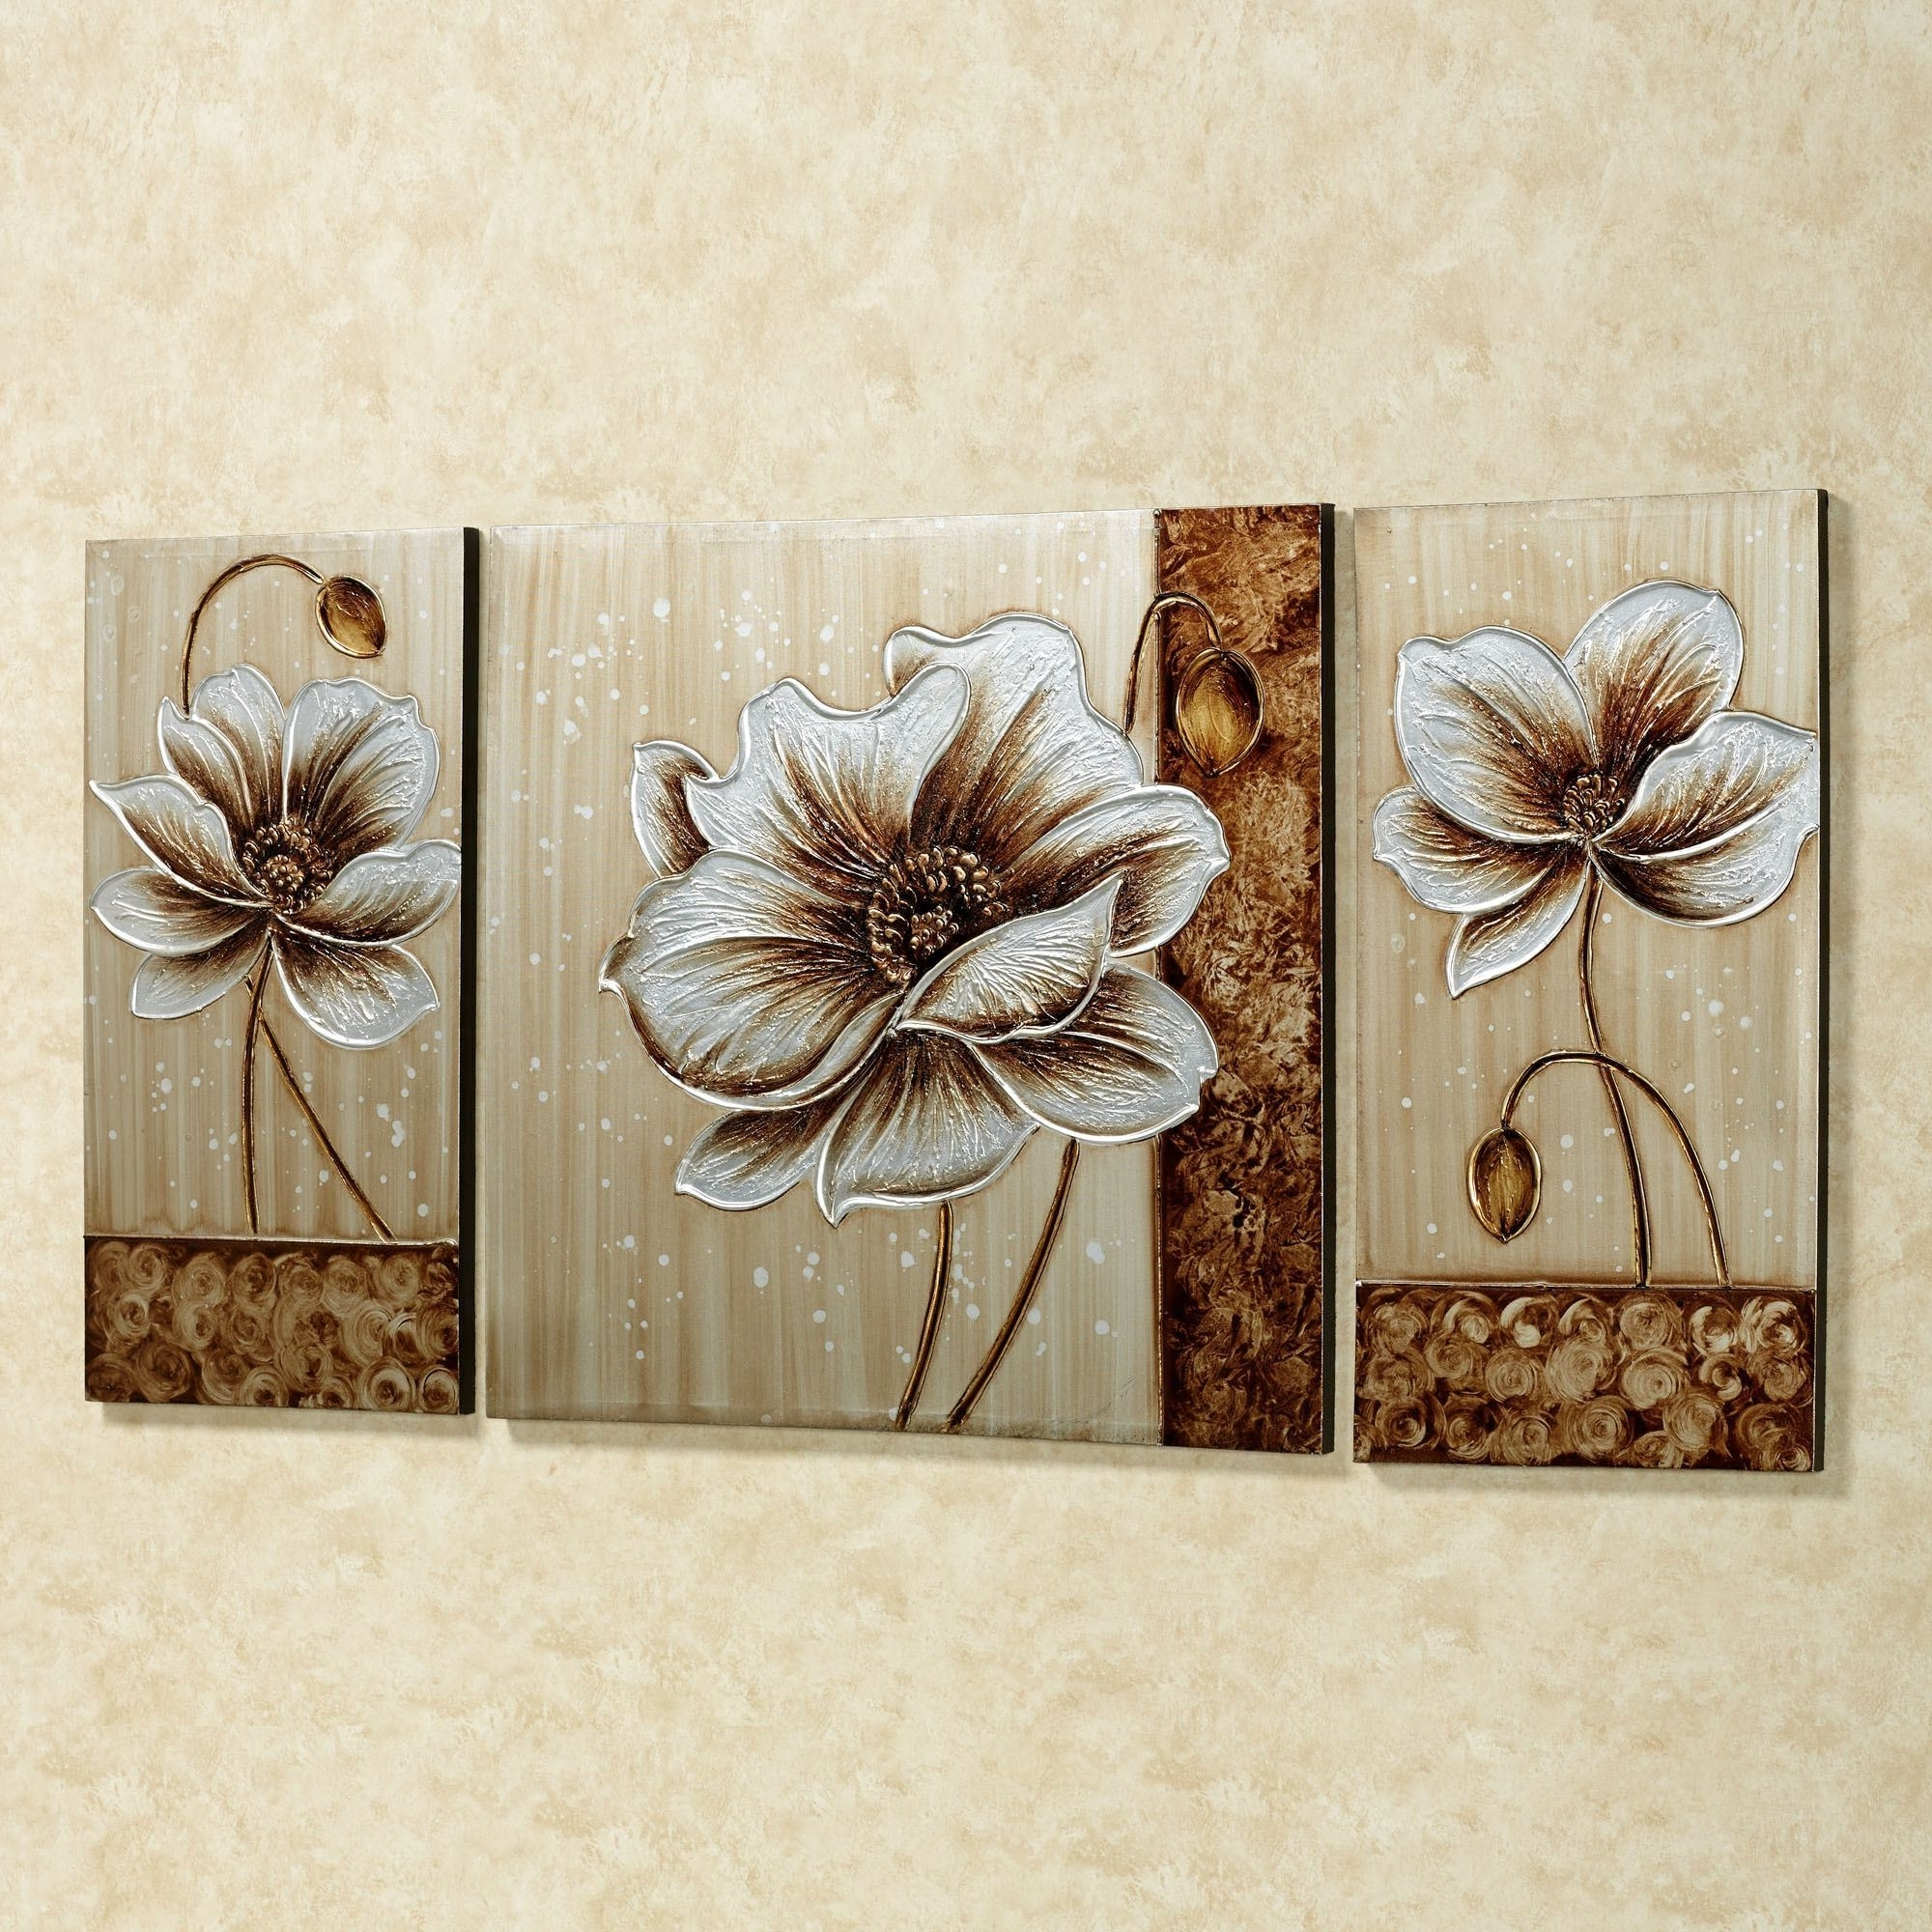 Subtle Elegance Floral Canvas Wall Art Set Inside Recent Wall Art Sets (View 8 of 15)